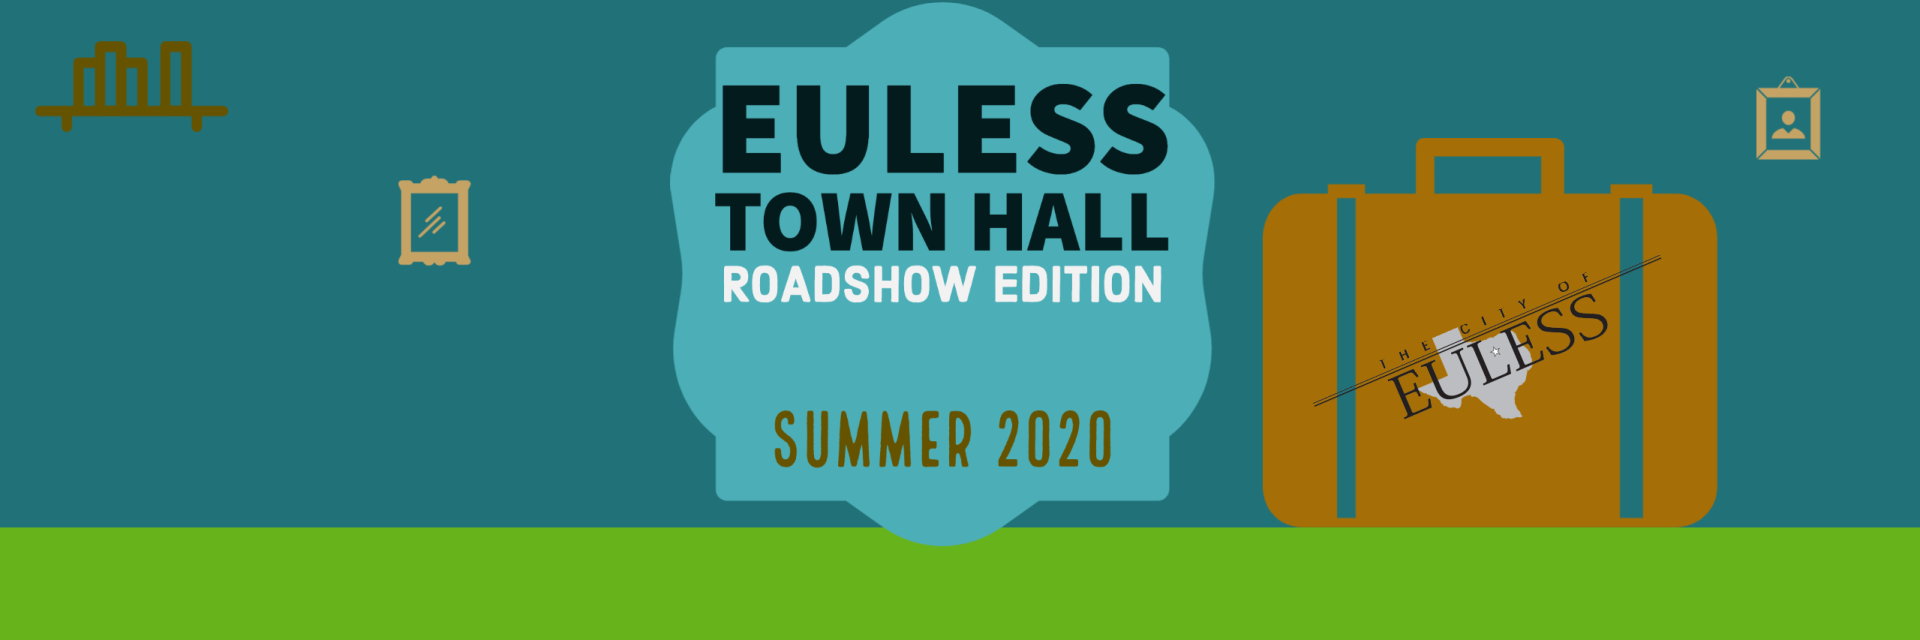 Town Hall Roadshow Banner